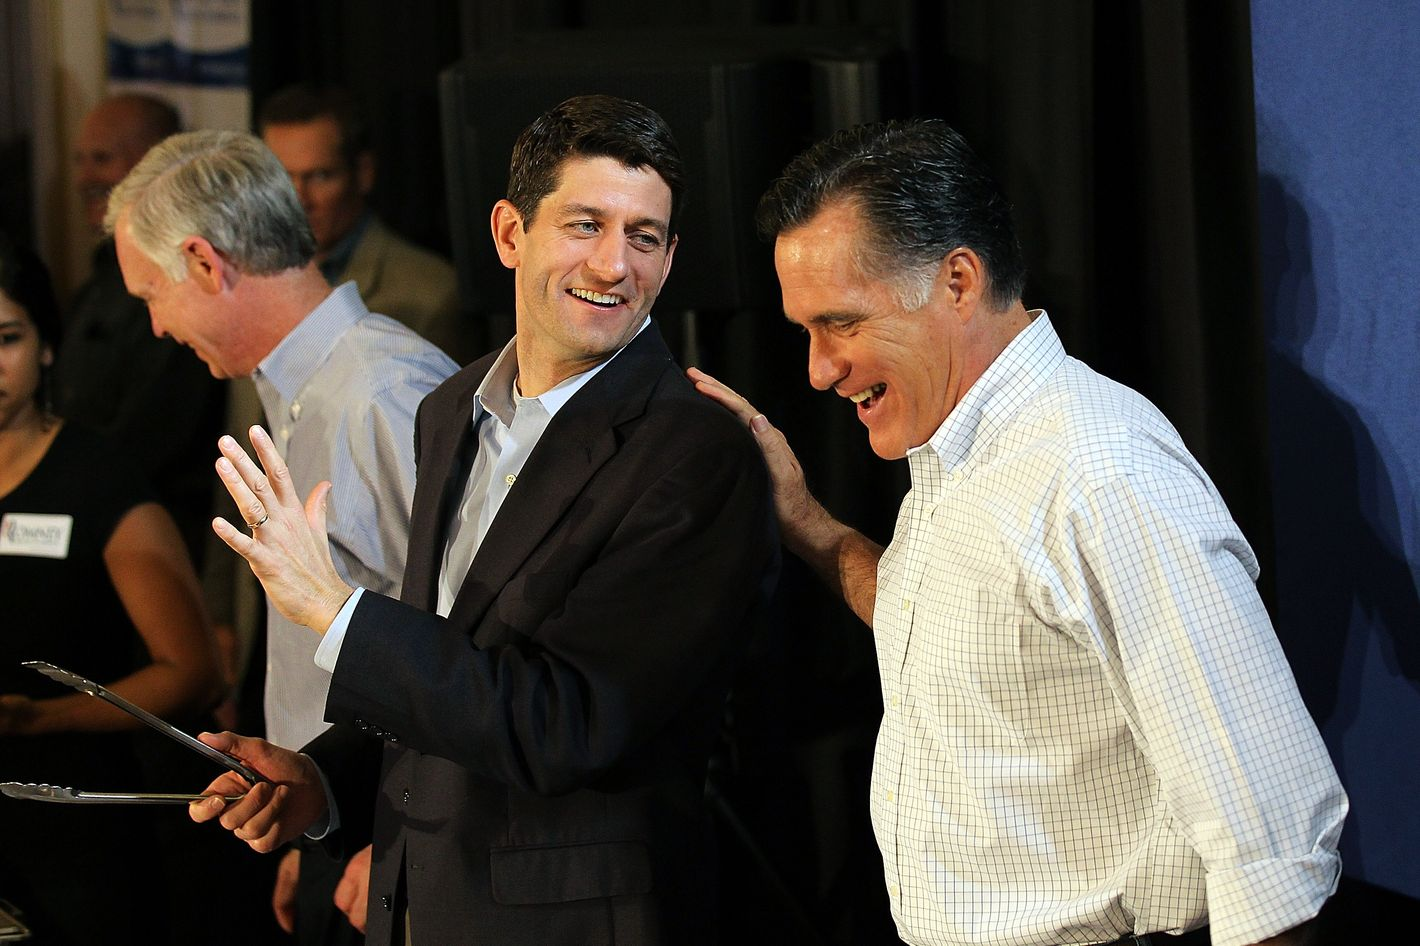 MILWAUKEE, WI - APRIL 01:  Republican Presidential candidate, former Massachusetts Gov. Mitt Romney (R) jokes with U.S. Rep Paul Ryan (C) (R-WI) during a pancake brunch at Bluemound Gardens on April 1, 2012 in Milwaukee, Wisconsin. With less than a week before the Wisconsin primary, Mitt Romney continues to campaign through the state.  (Photo by Justin Sullivan/Getty Images)